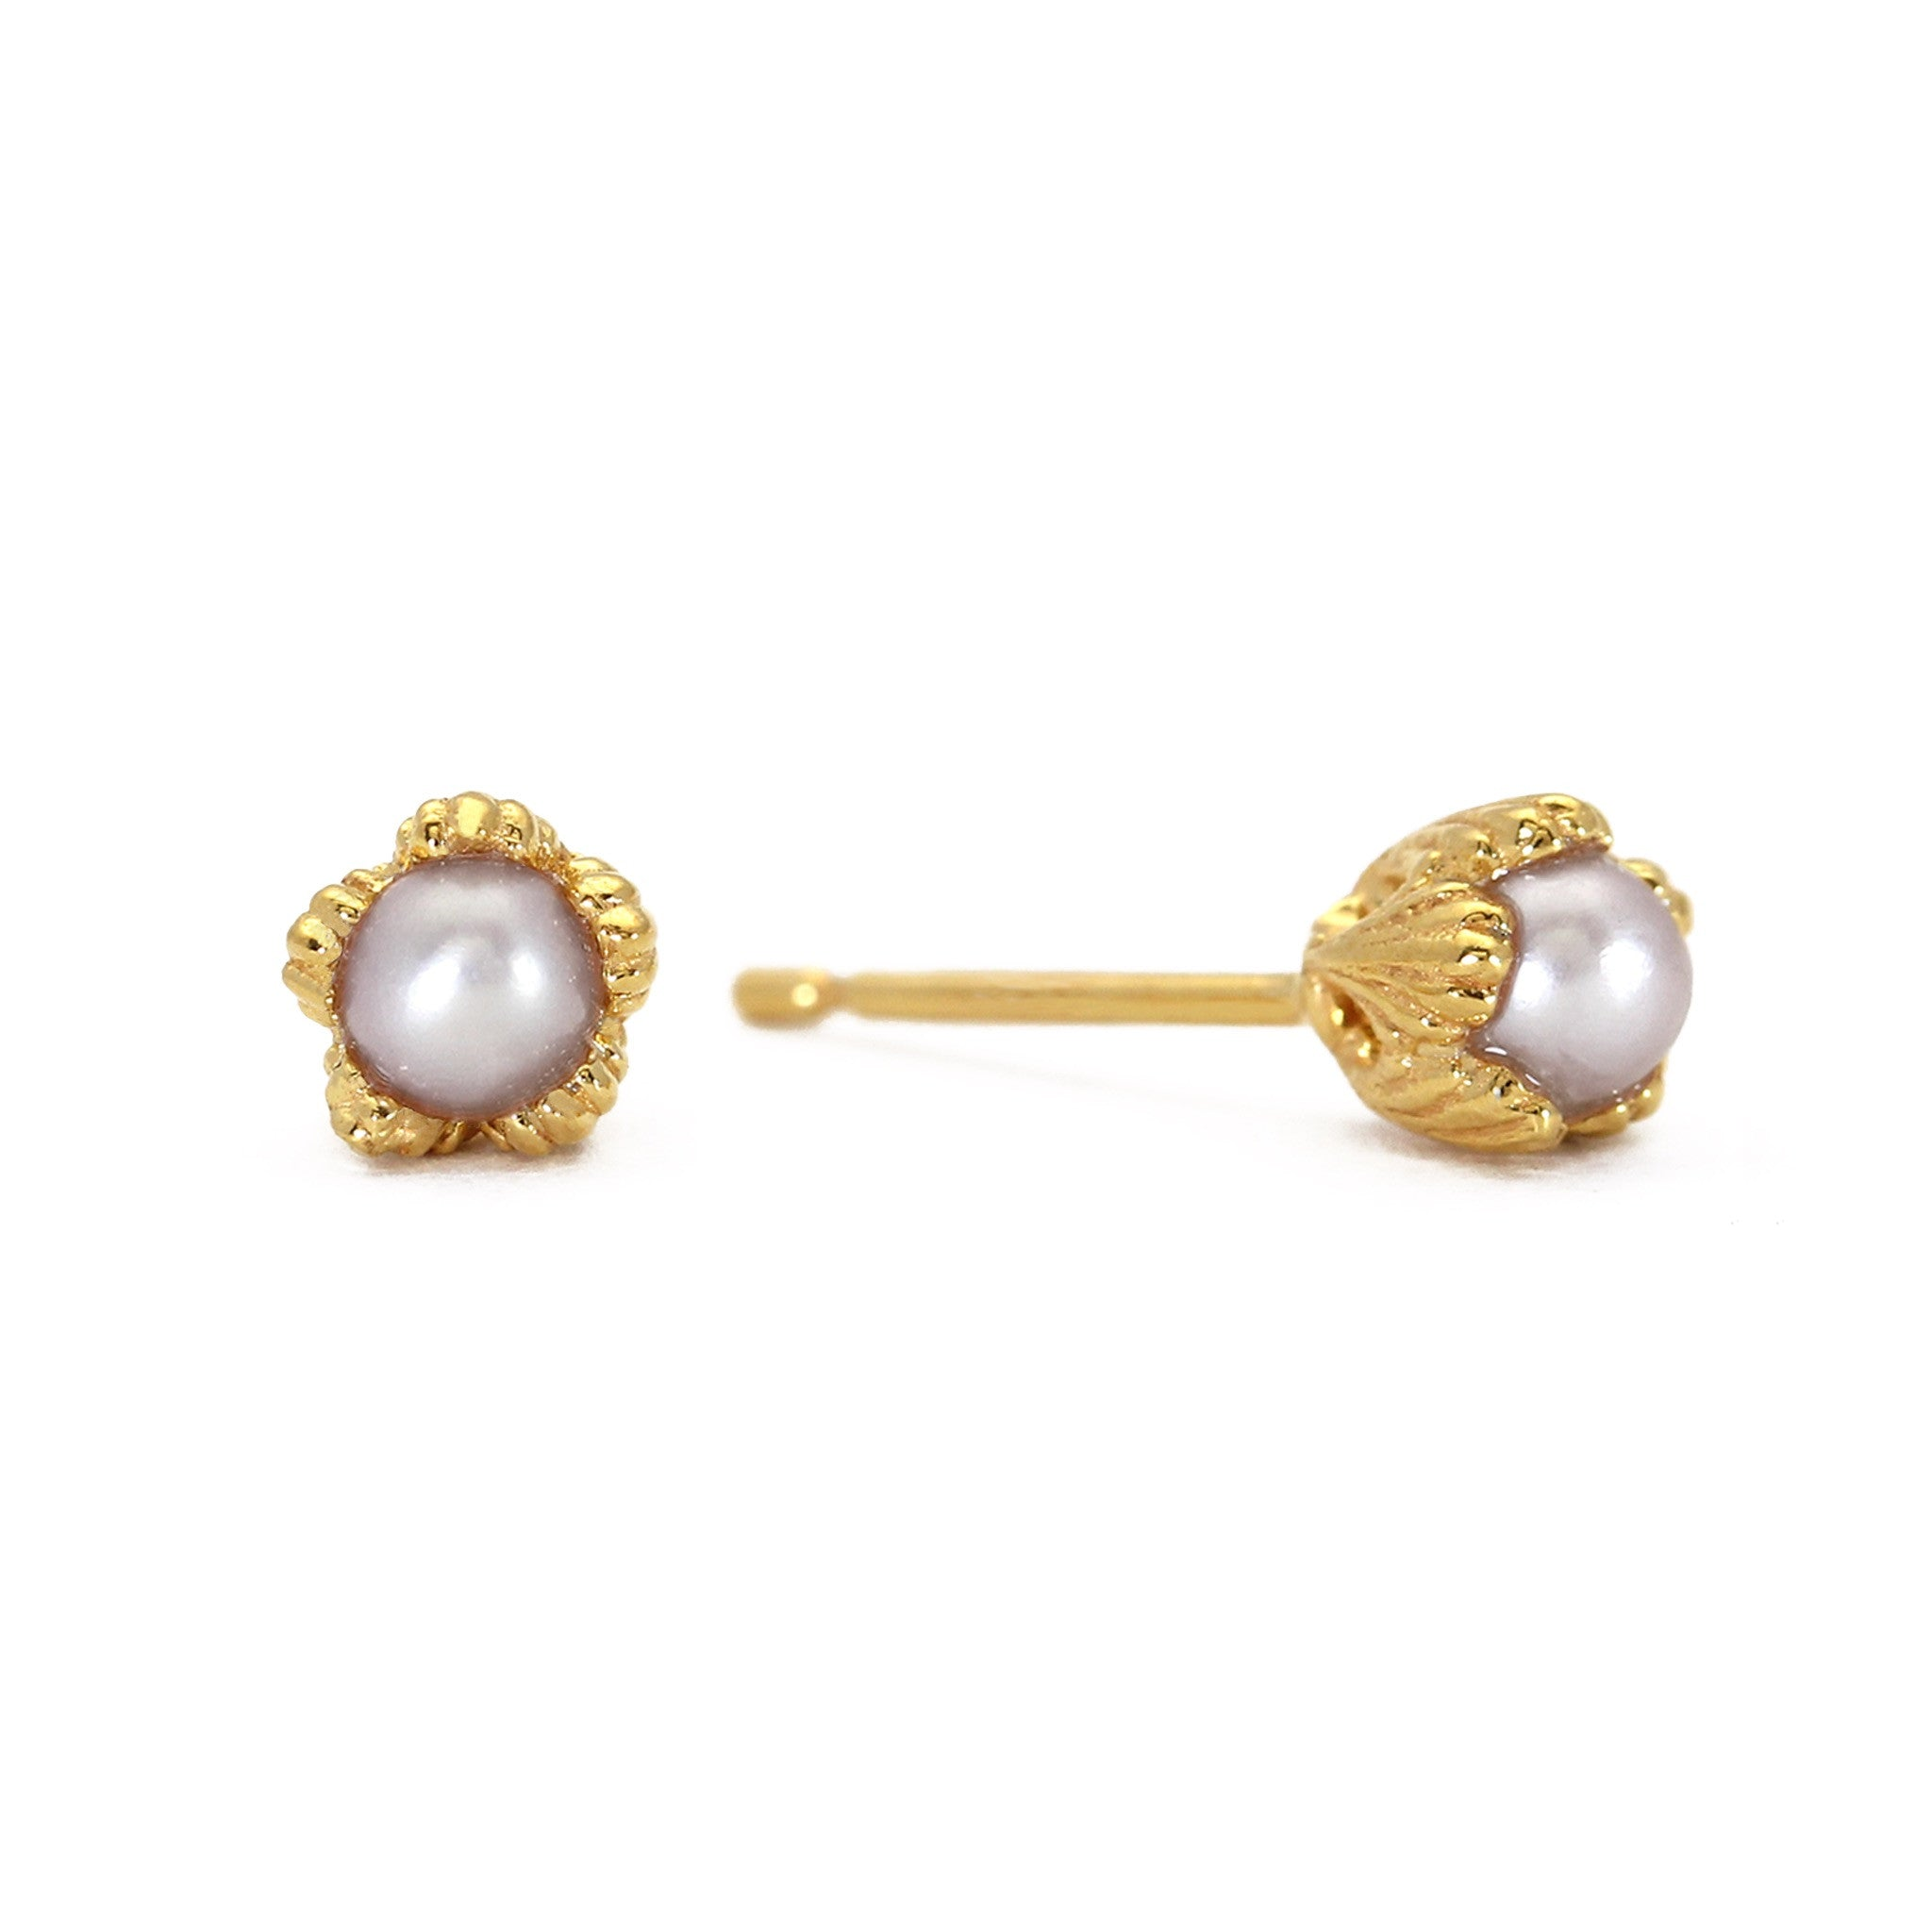 sizes south pearls loose gss gold together pearl sea mm collection golden overtones